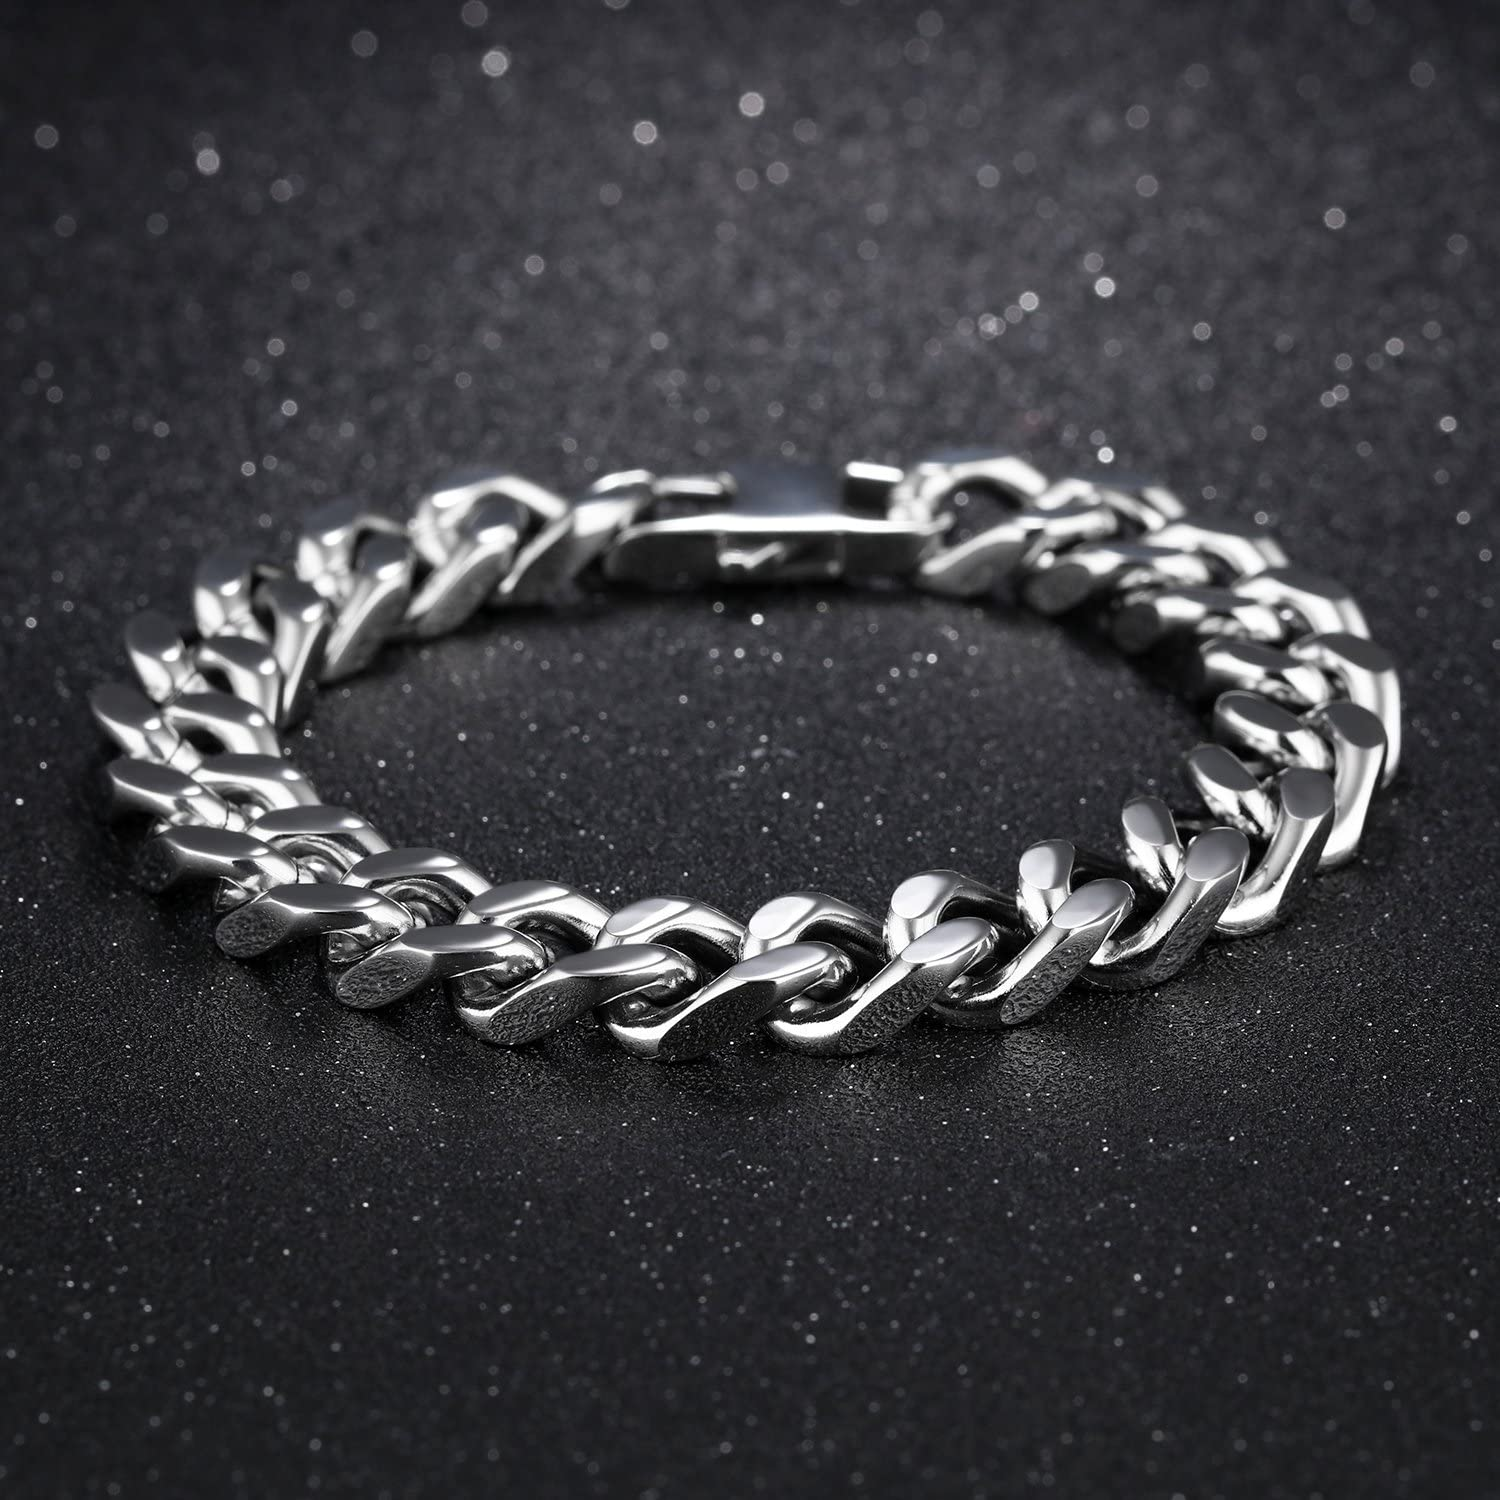 Mens Stainless Steel Bracelet Curb Chain Bracelet Silver Color High Polished Length 8.5-8.9 Inch With Gift box Perfect Jewellery Gift for Boyfriend 12mm